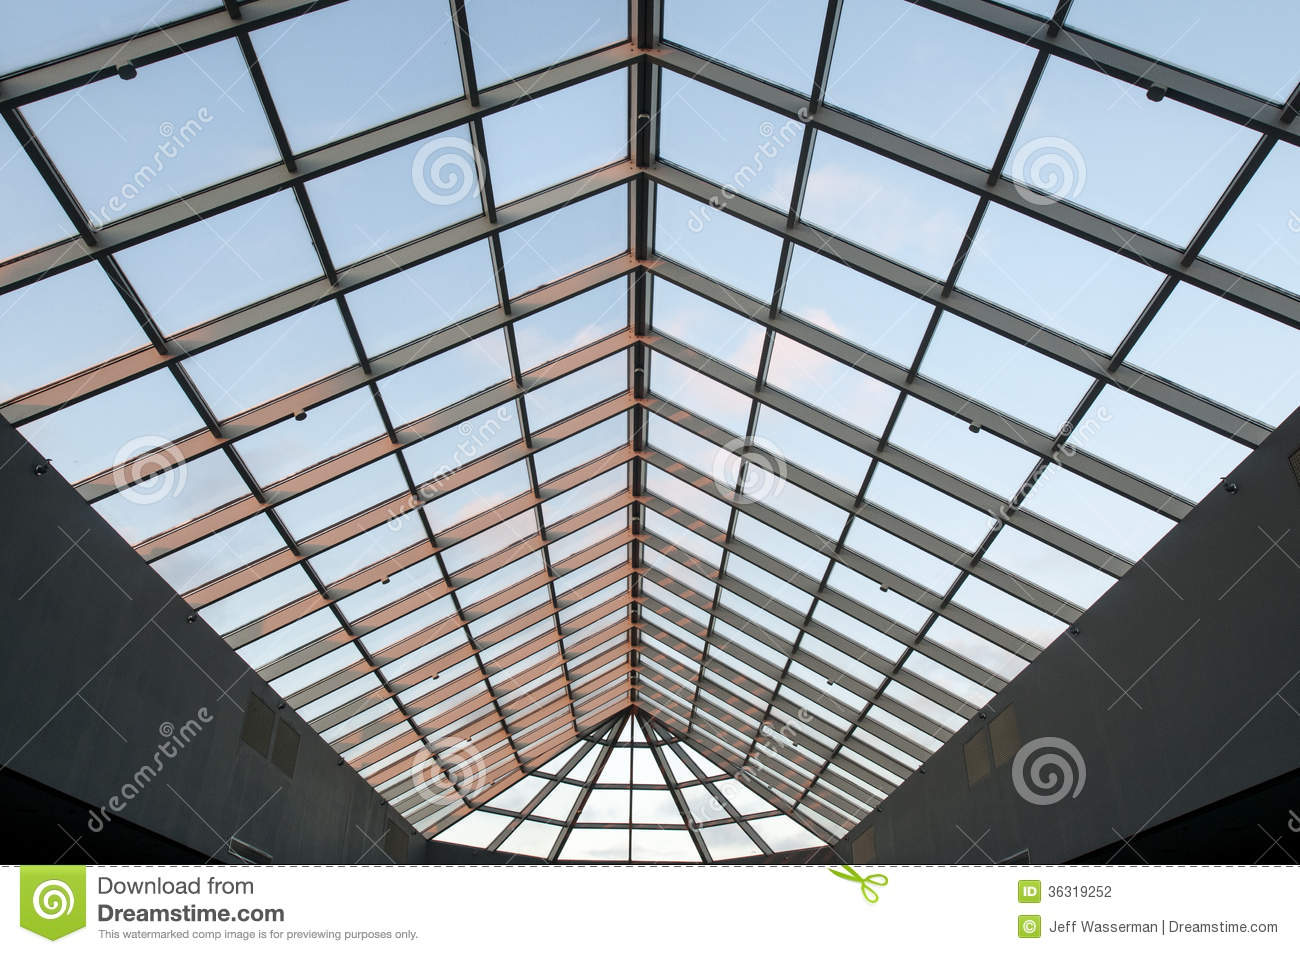 Skylight Ceiling At Dusk In Commercial Office Building Stock Photography - Image: 36319252